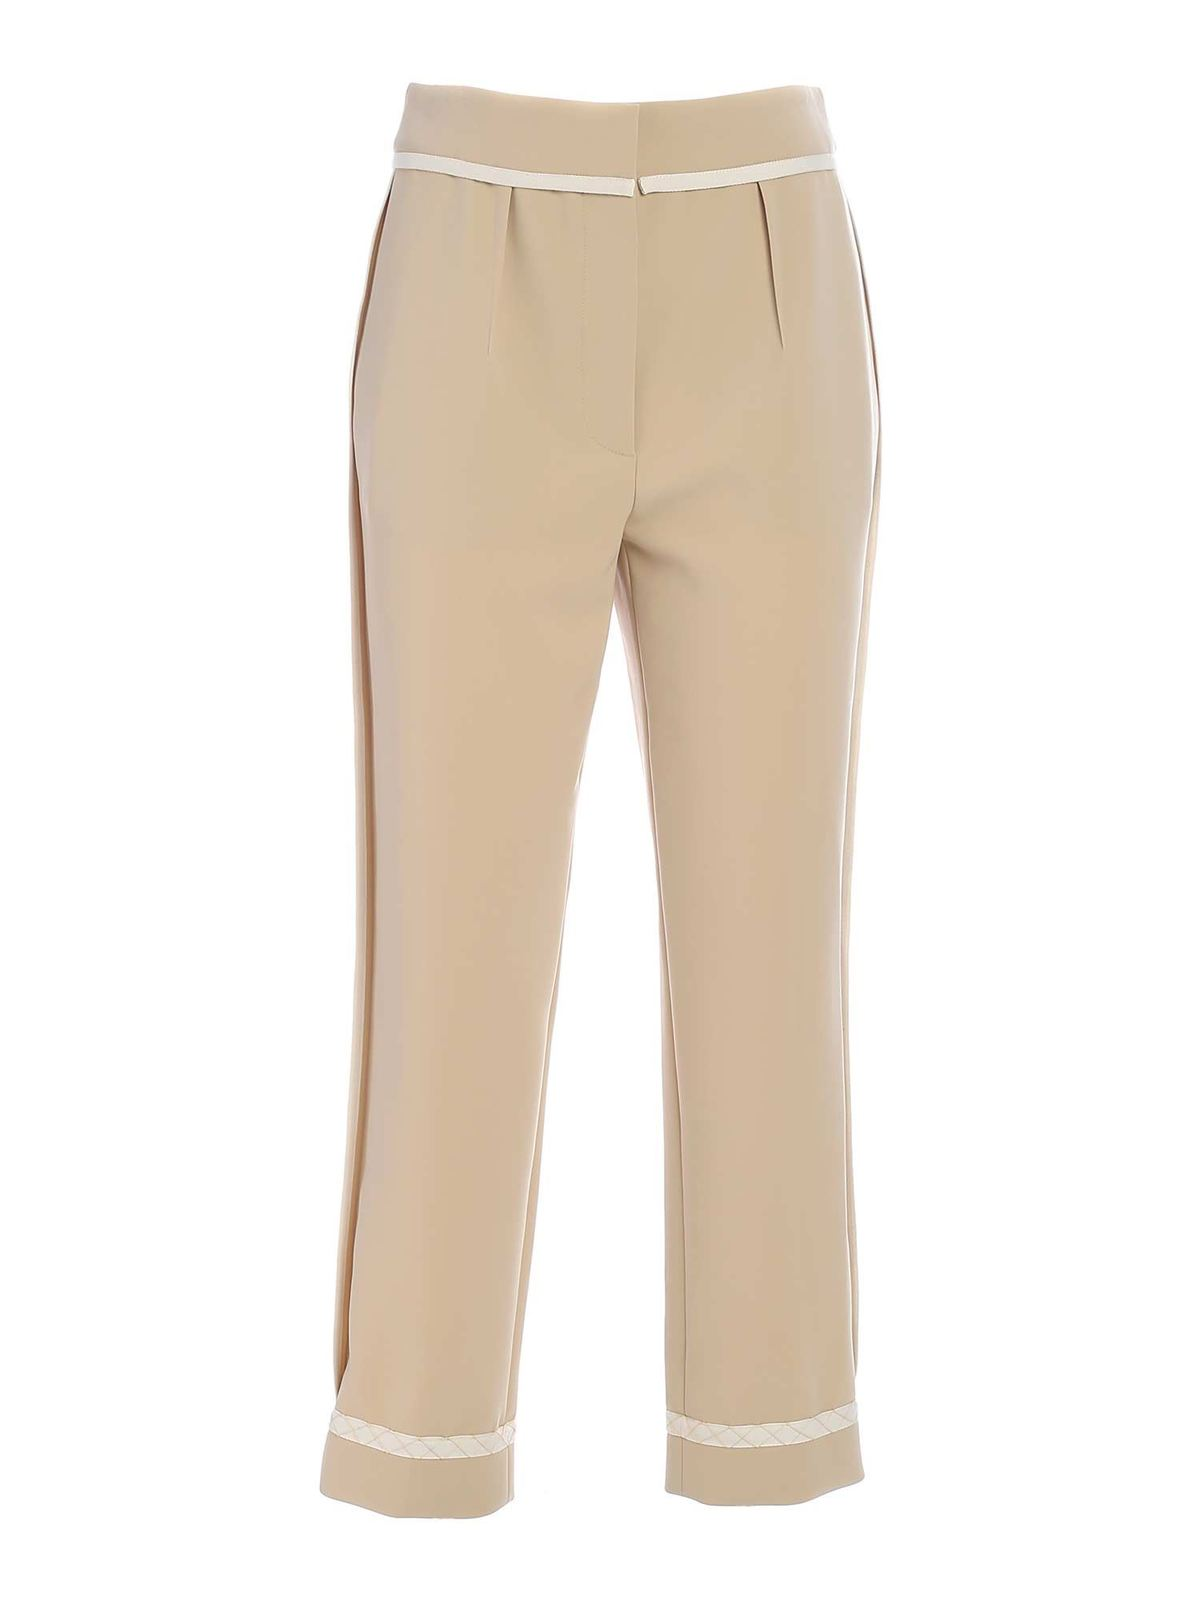 Moschino CONTRASTING DETAILS PANTS IN BEIGE